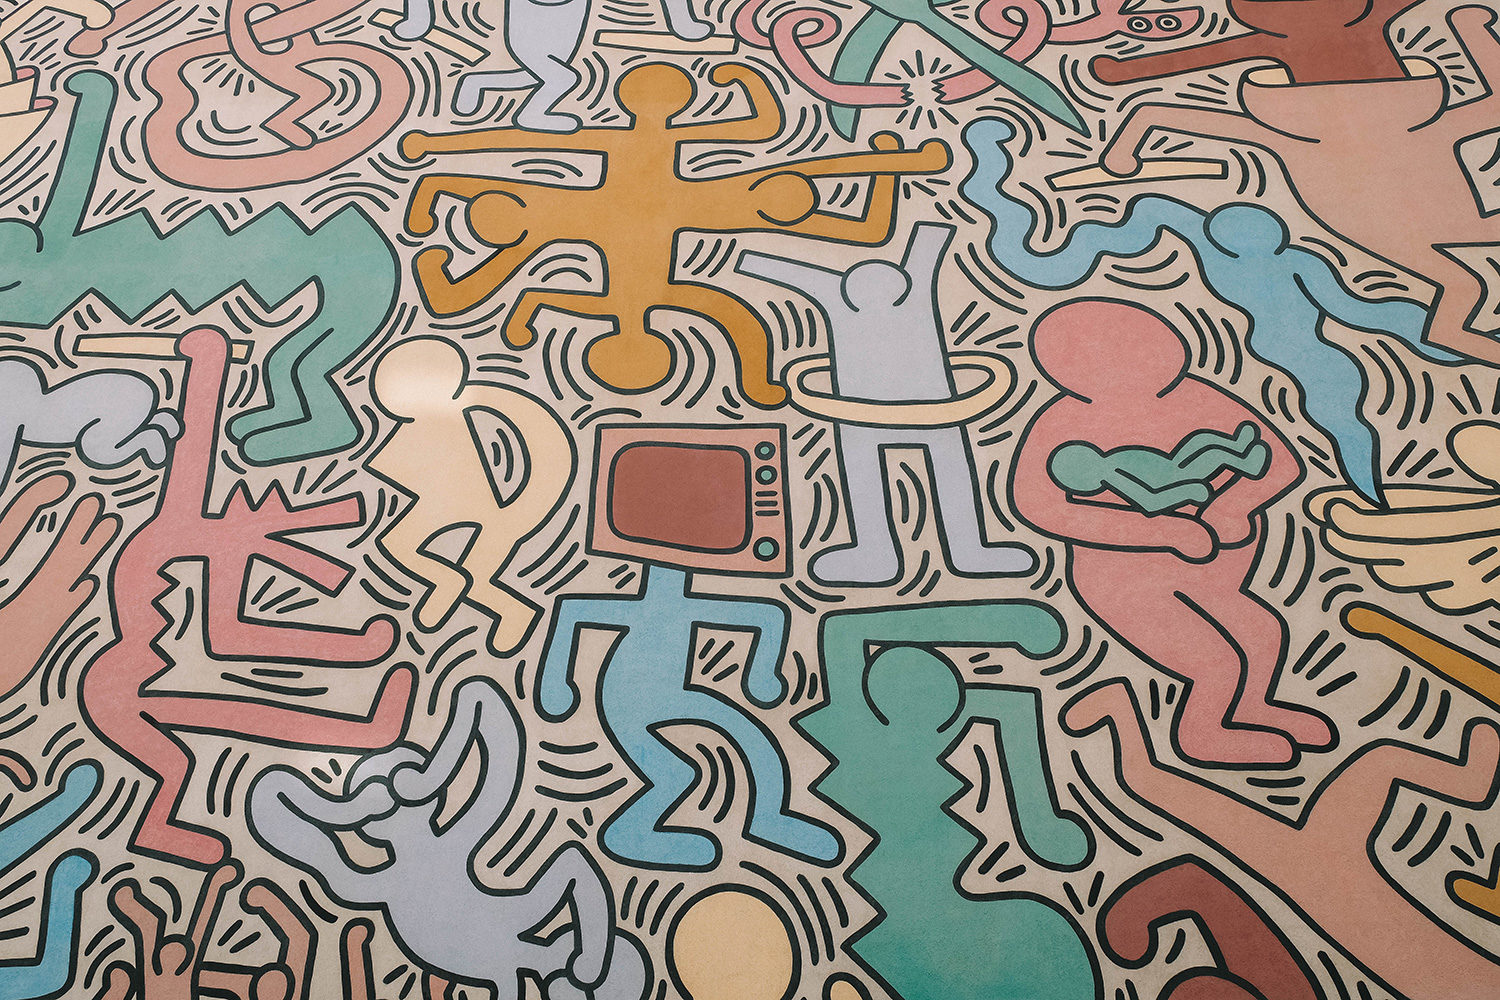 Fresque signée Keith Haring